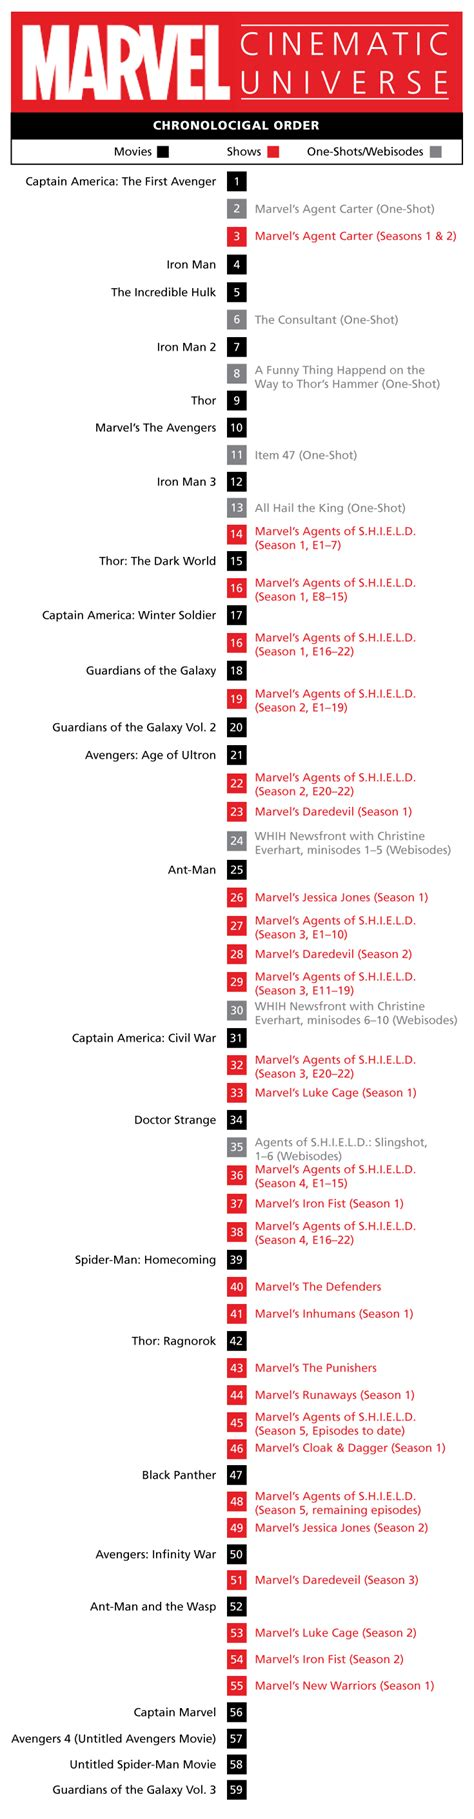 the ultimate marvel movie universe timeline how to watch marvel movies